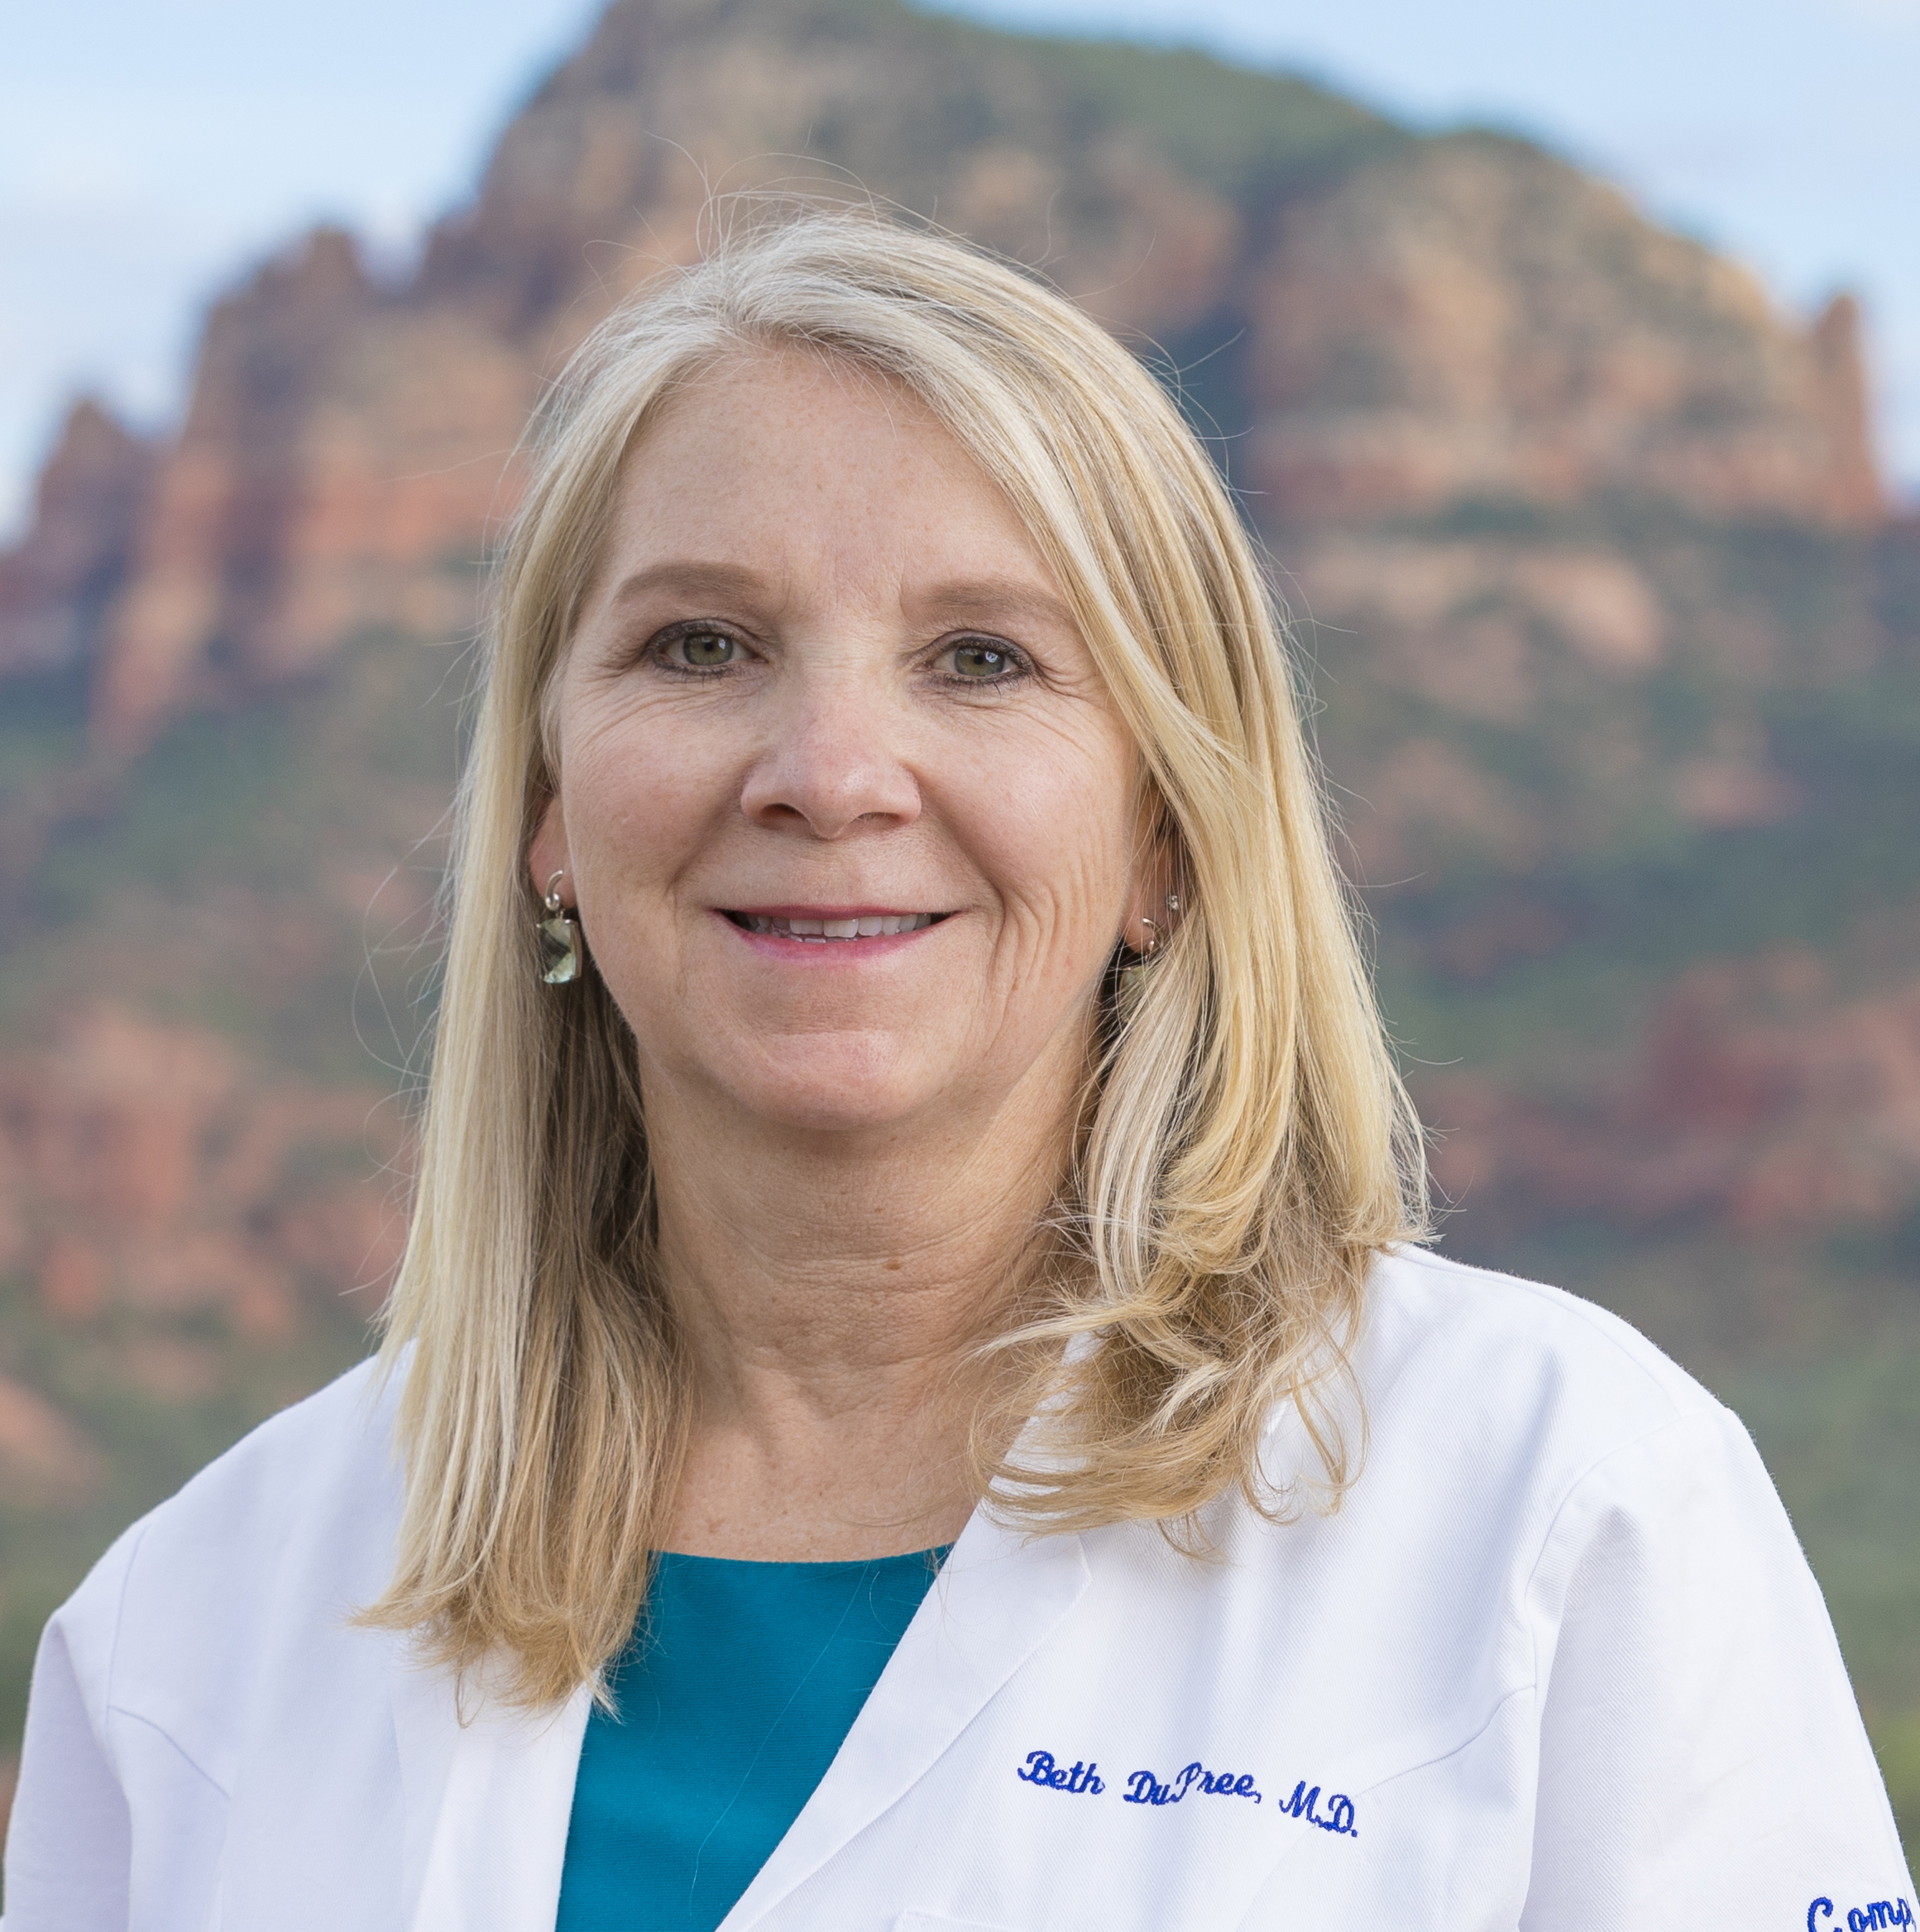 BBD white coat twin buttes cropped.jpg